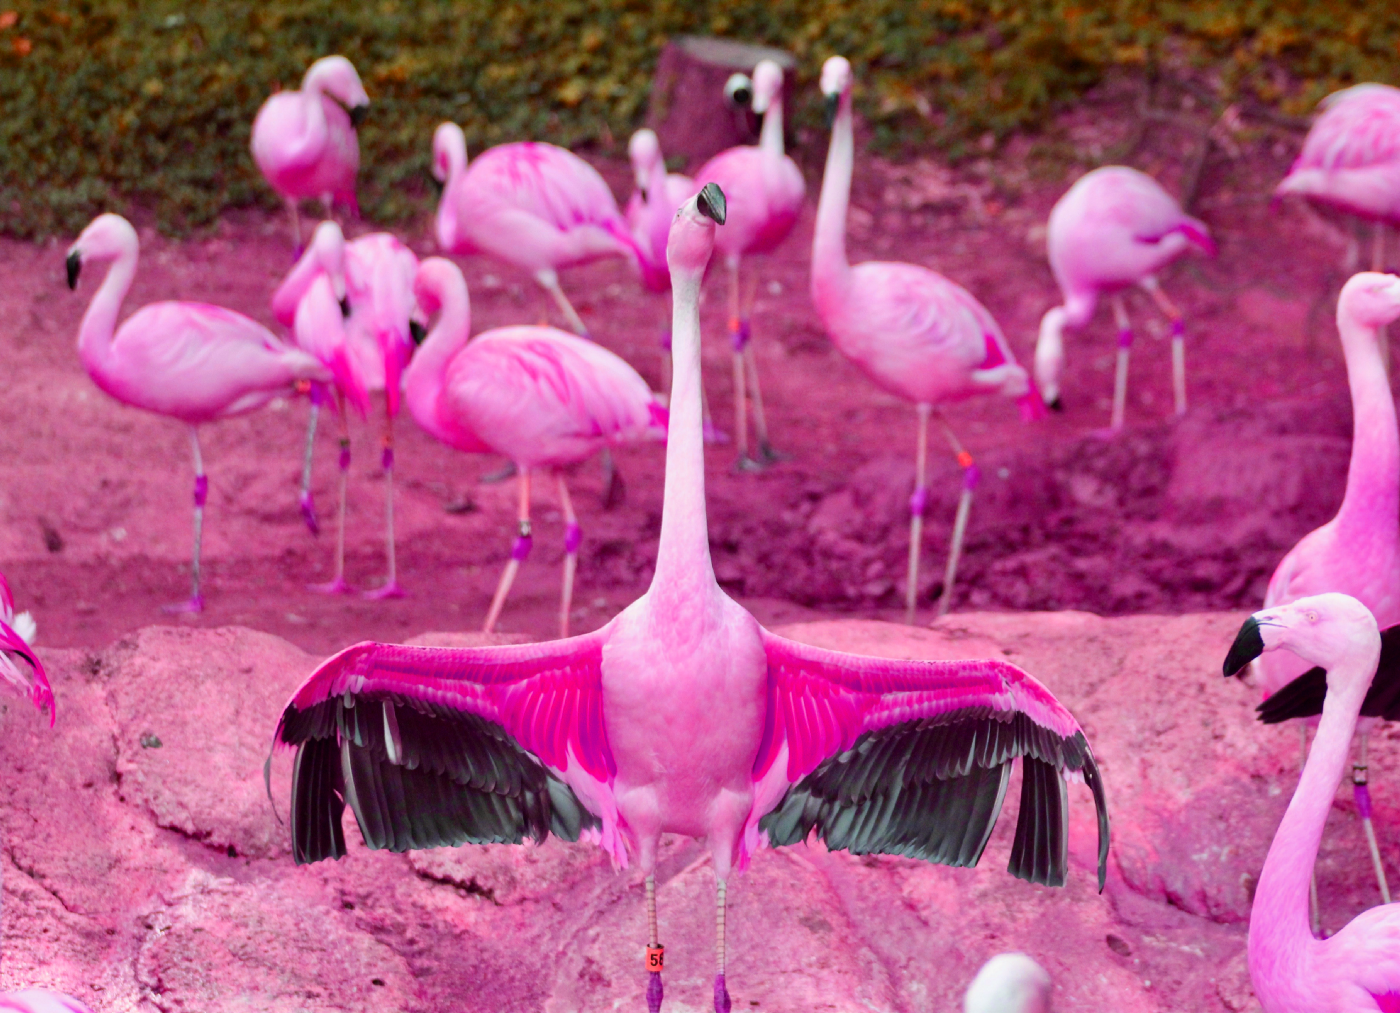 A flamingo spreads its wings, with other flamingos in the background.